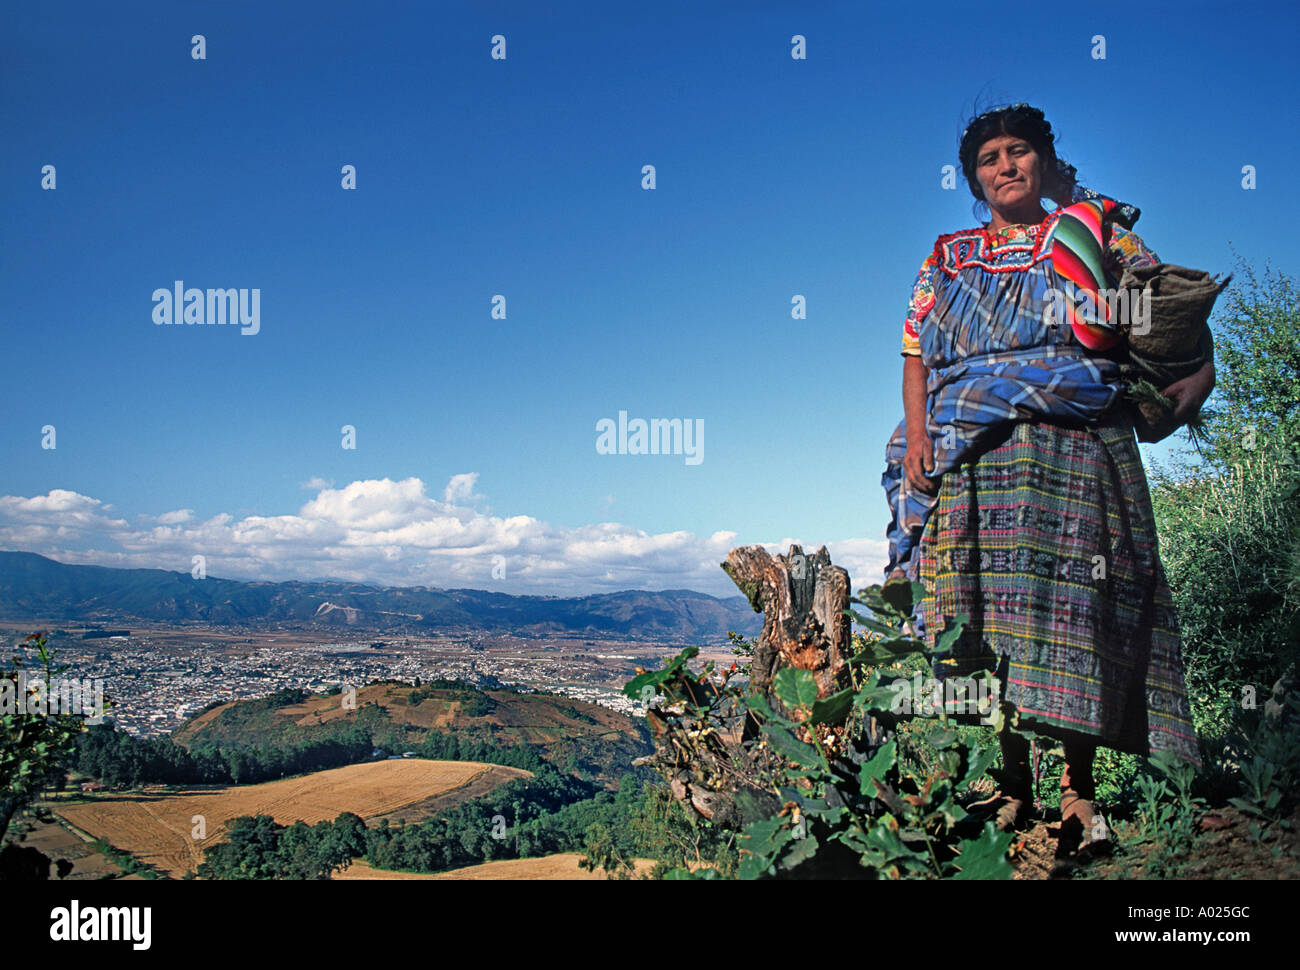 Portrait of a flower picker standing on a hillside with the town of Quetzaltenango in the distance Guatemala - Stock Image